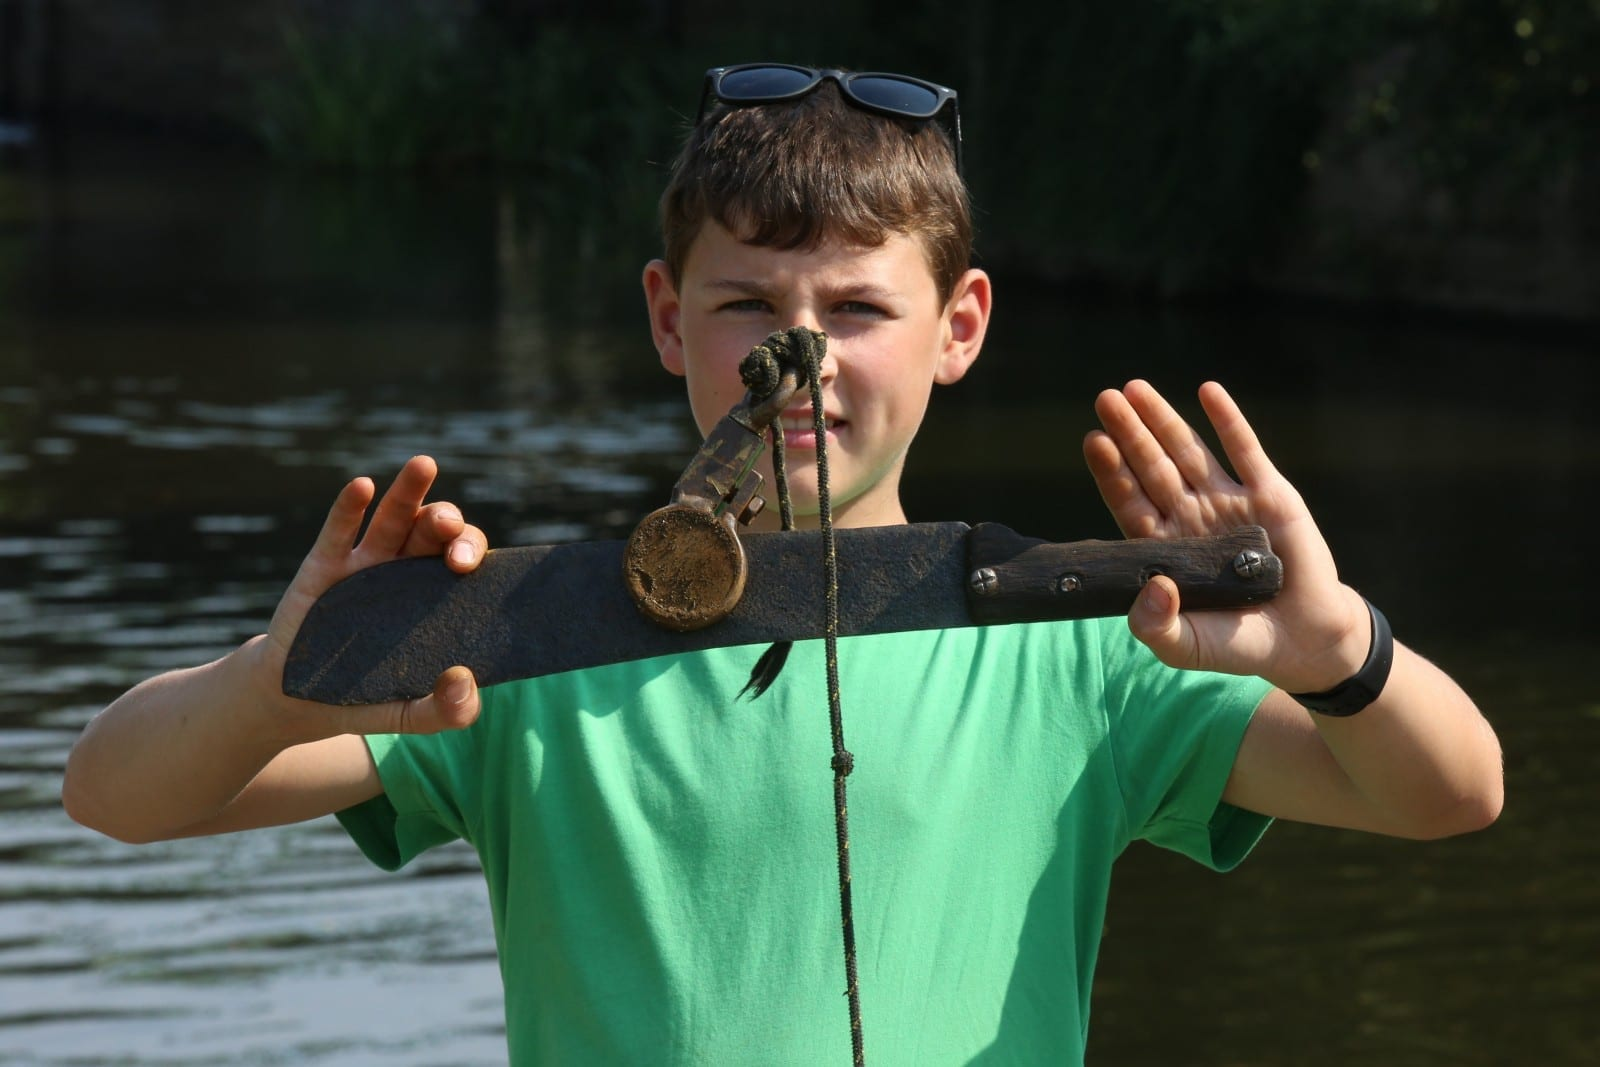 Schoolboy Reels In Huge Arsenal Of Weapons After Taking Up Magnet Fishing As A Hobby To Keep Him Out Of Trouble